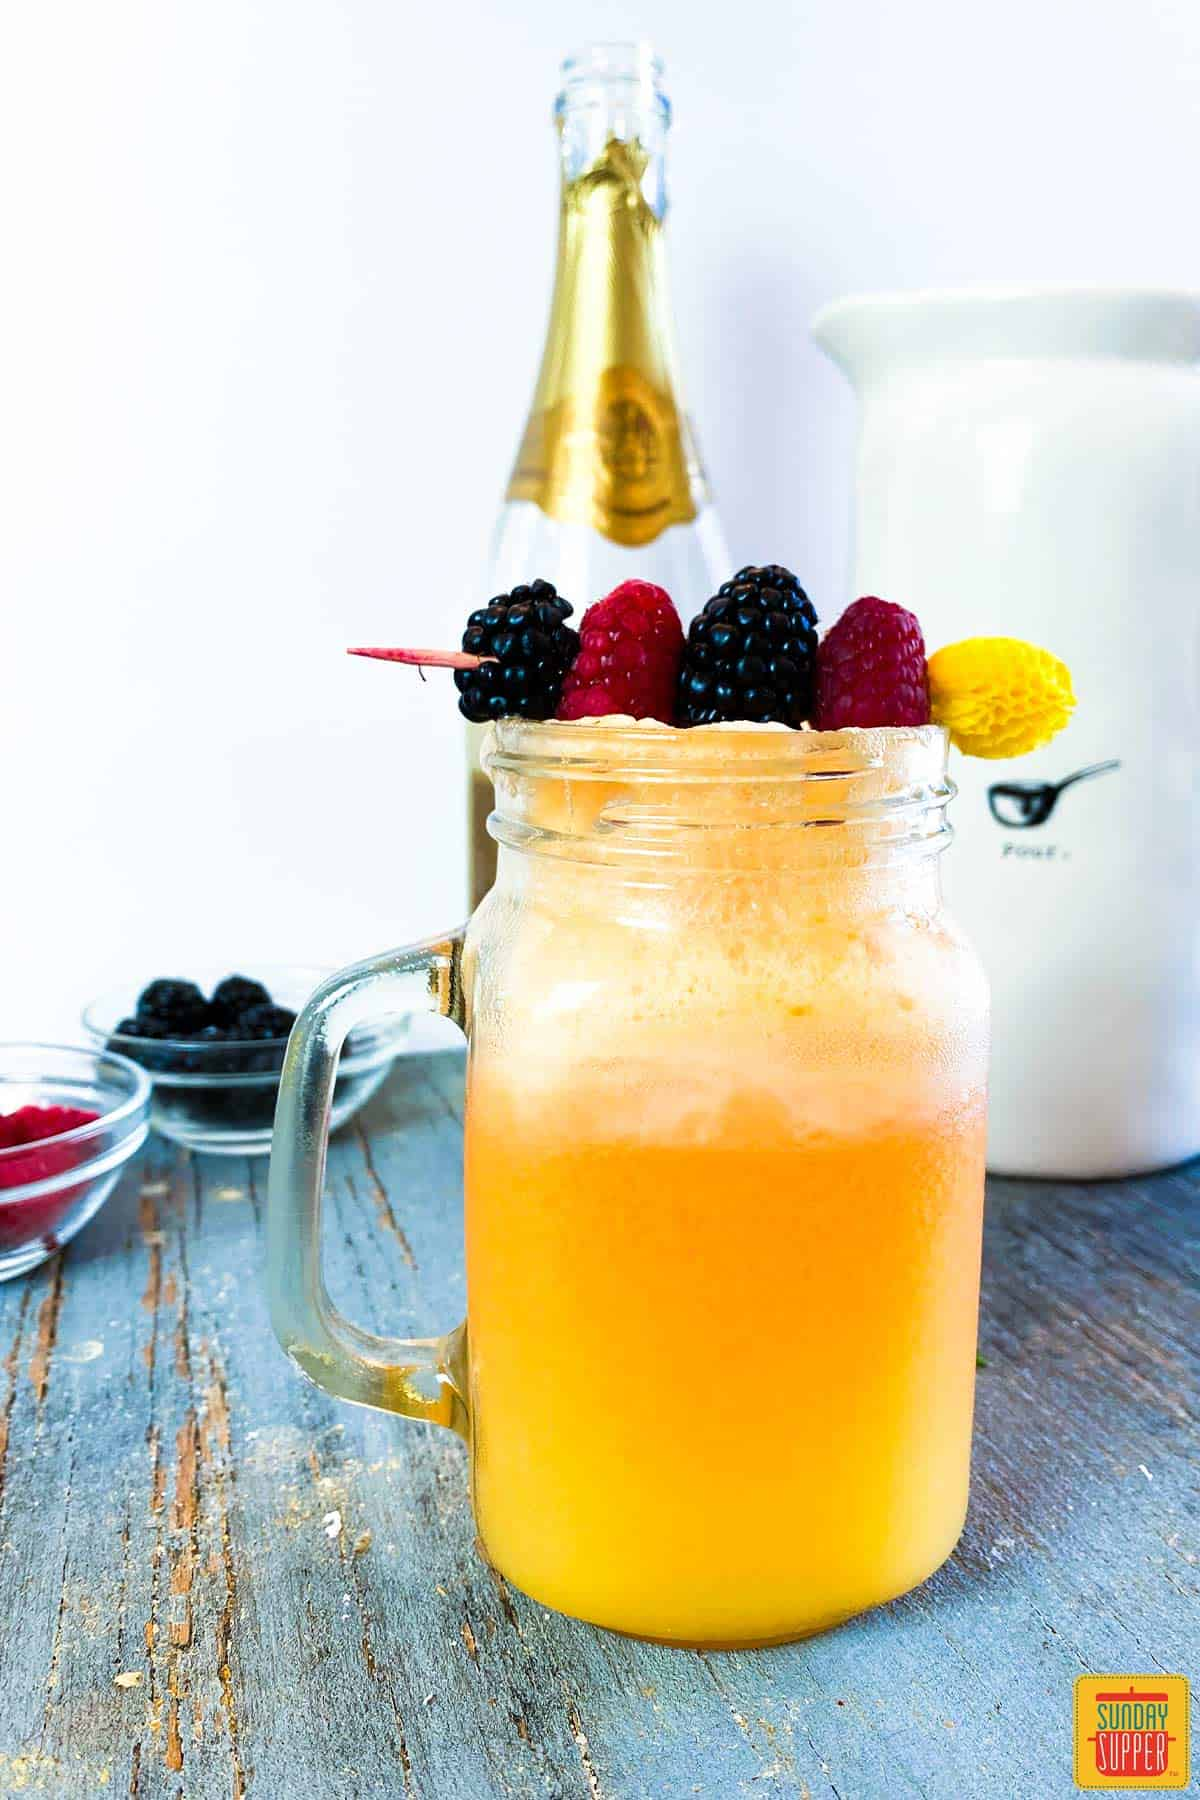 Momosa mimosa recipe in a glass jar with fresh berries and a champagne bottle in the background